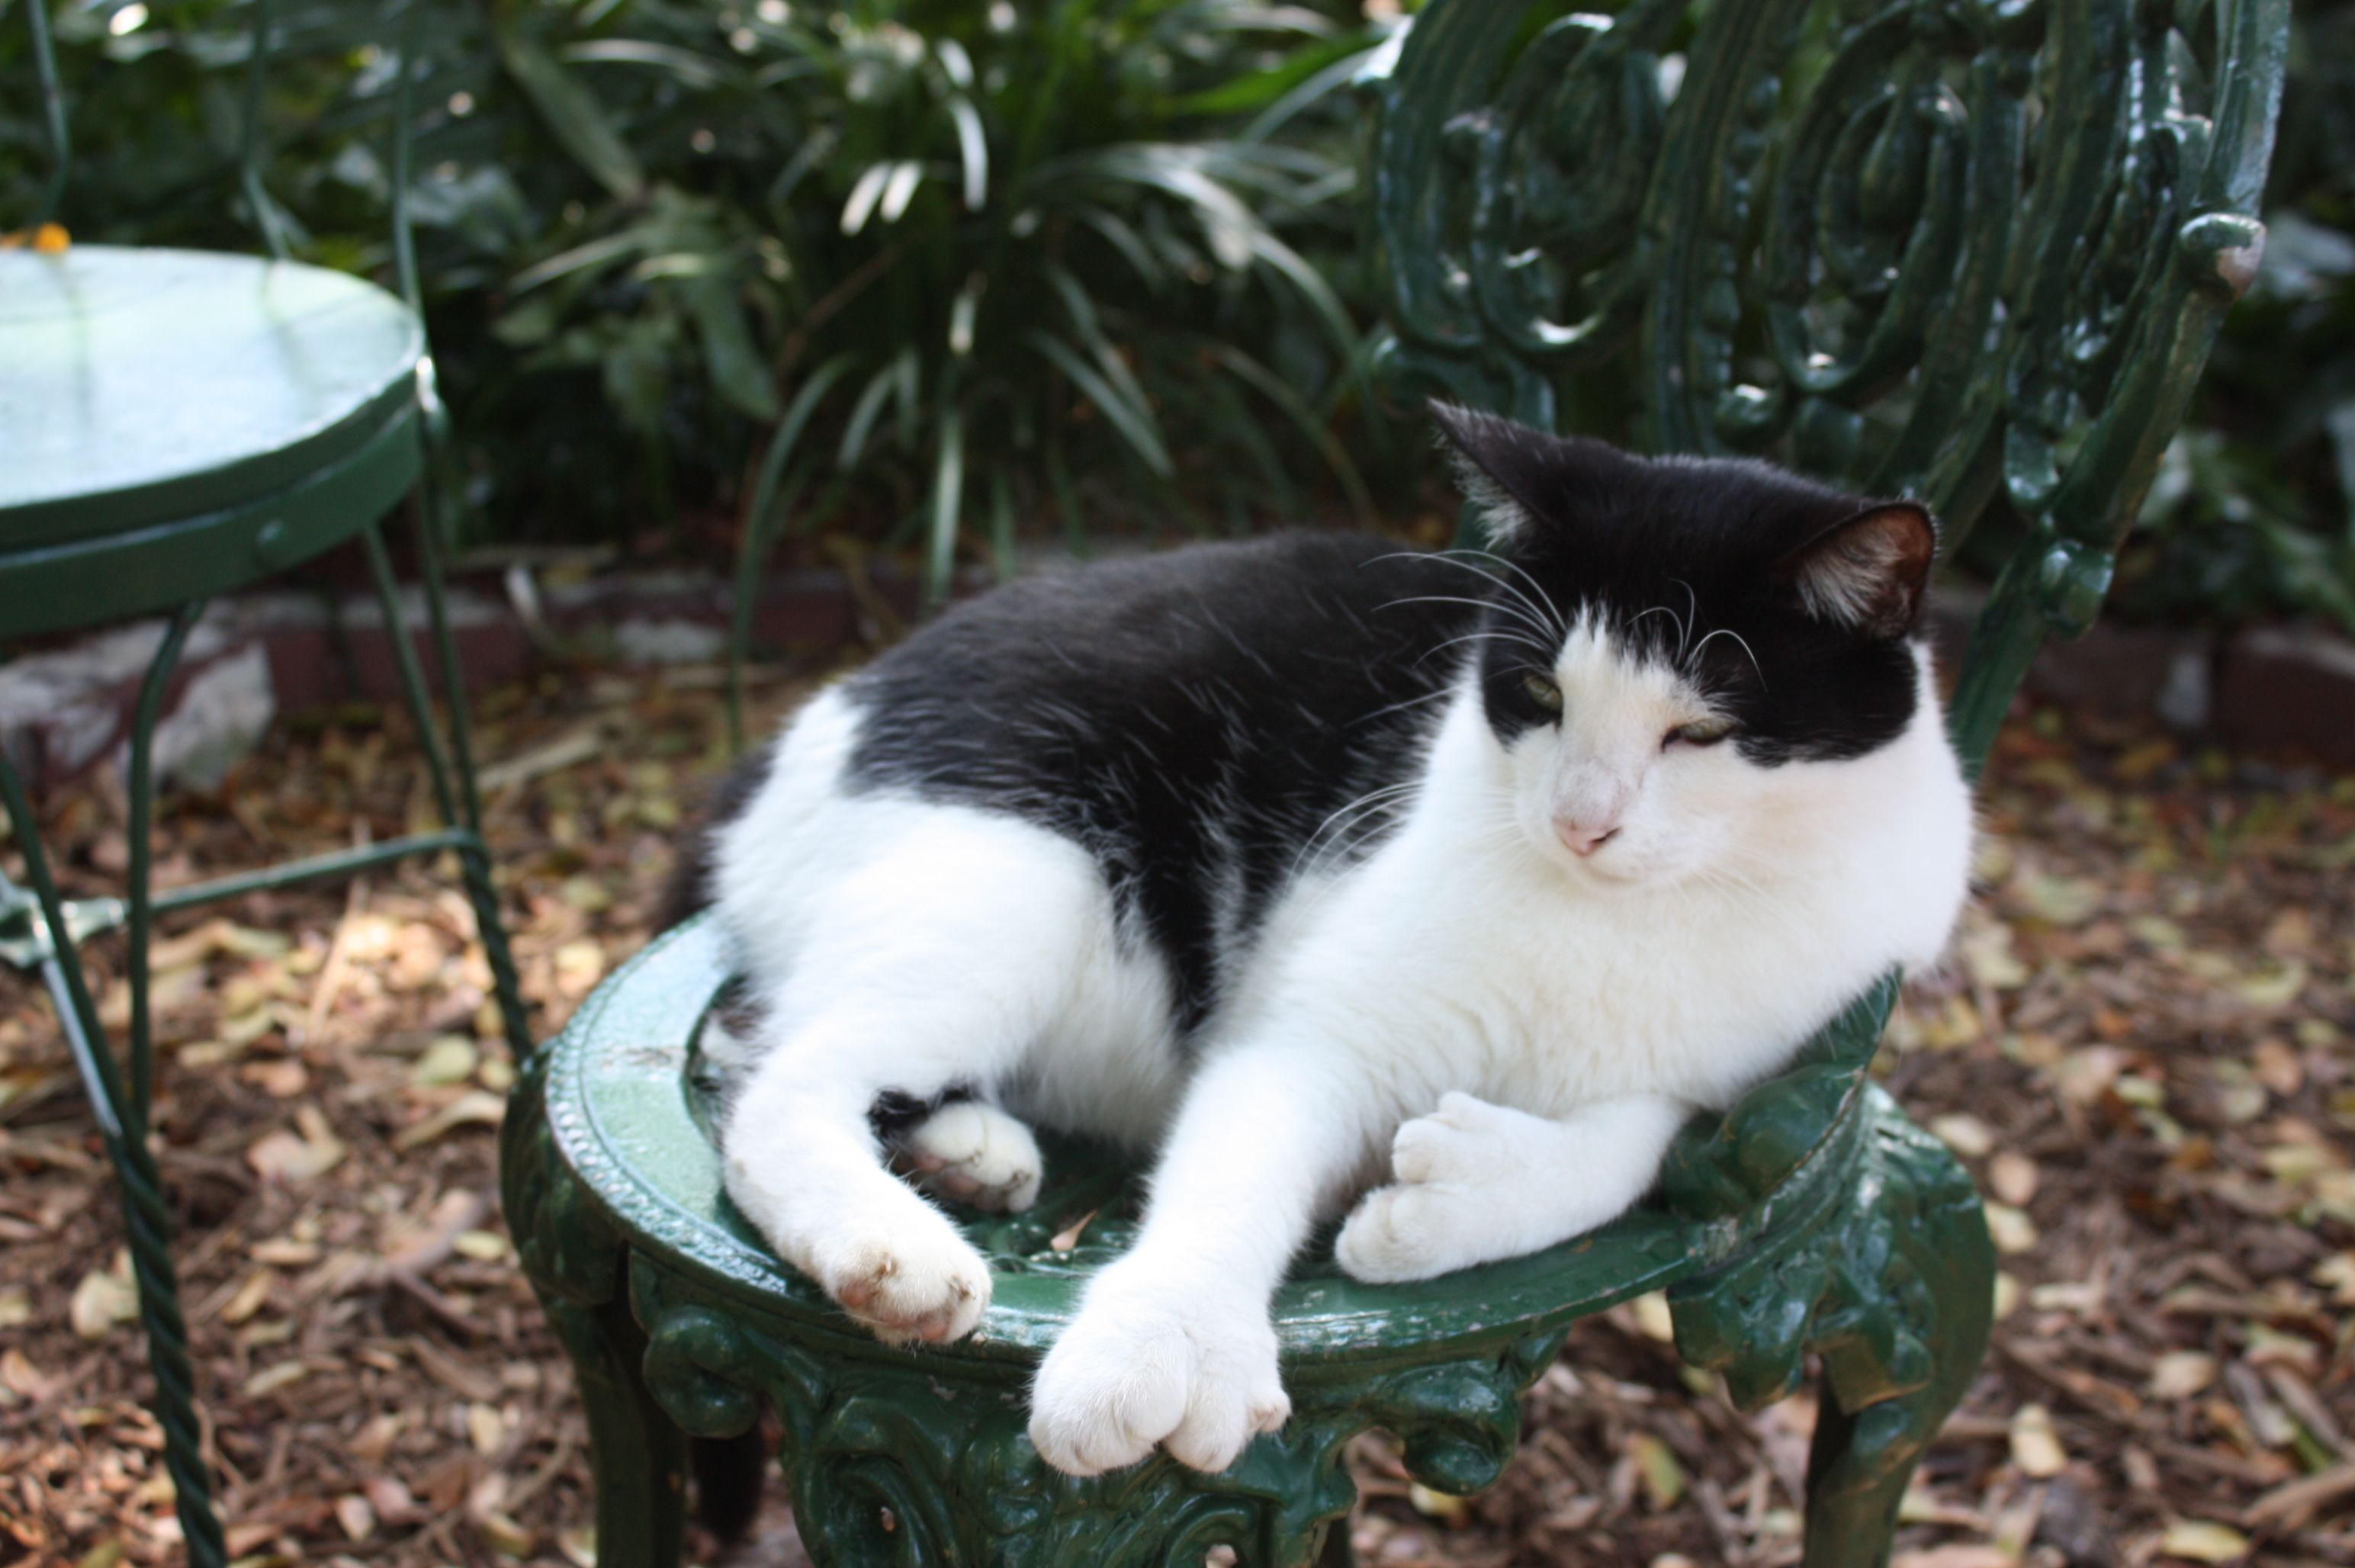 Photo of polydactyl cat taken at Ernest Hemmingway's home